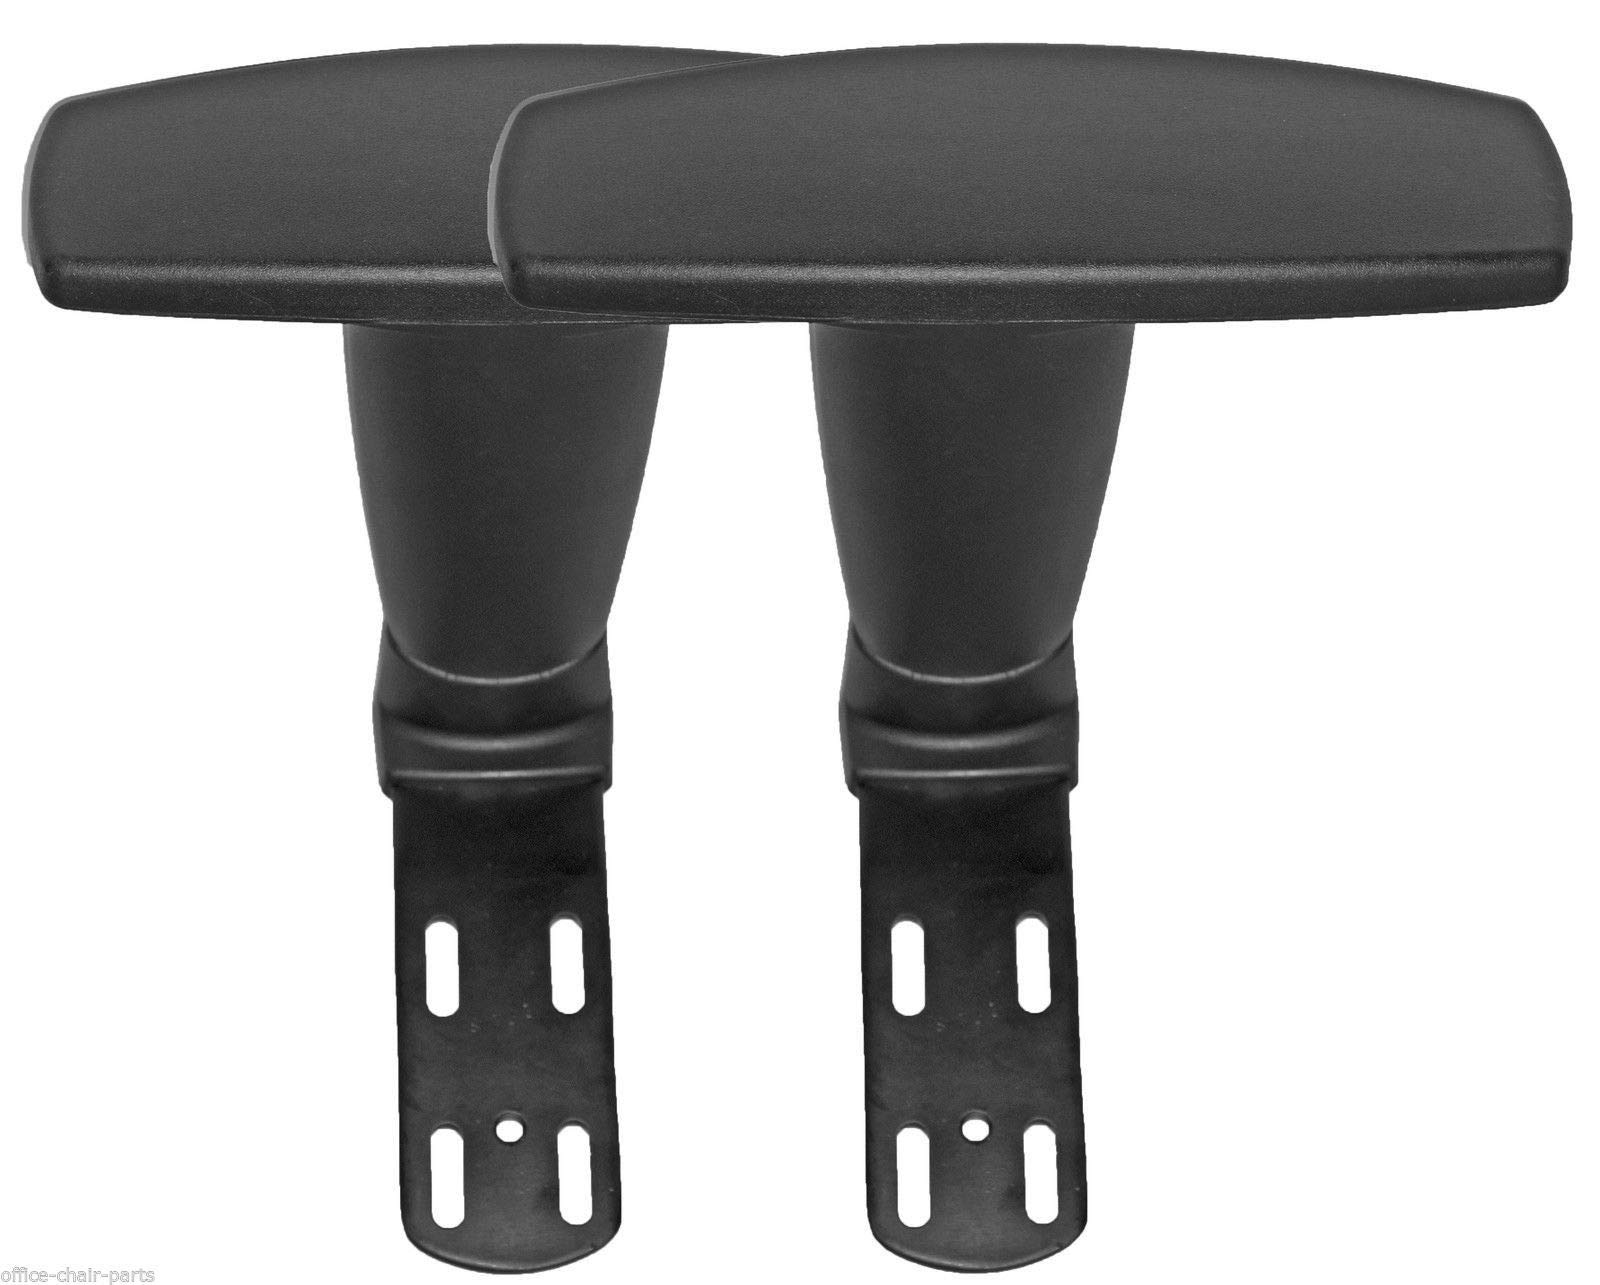 Adjustable Arms Armrest Upright Bracket with Pads 1 Pair -AS4F